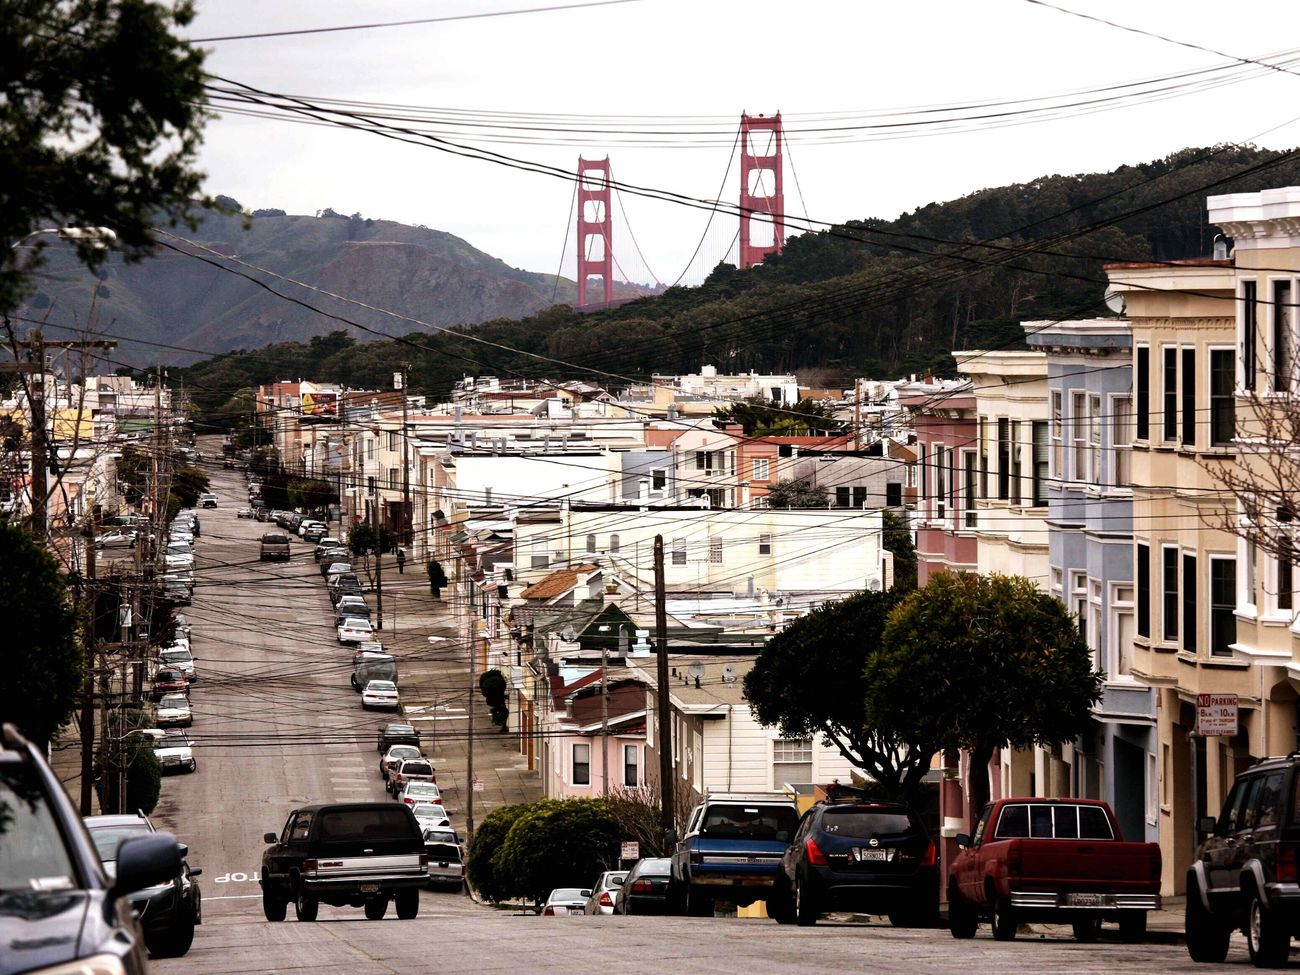 San Fransisco Beautiful Place Sanfrancisco Old Buildings Golden Gate Bridge